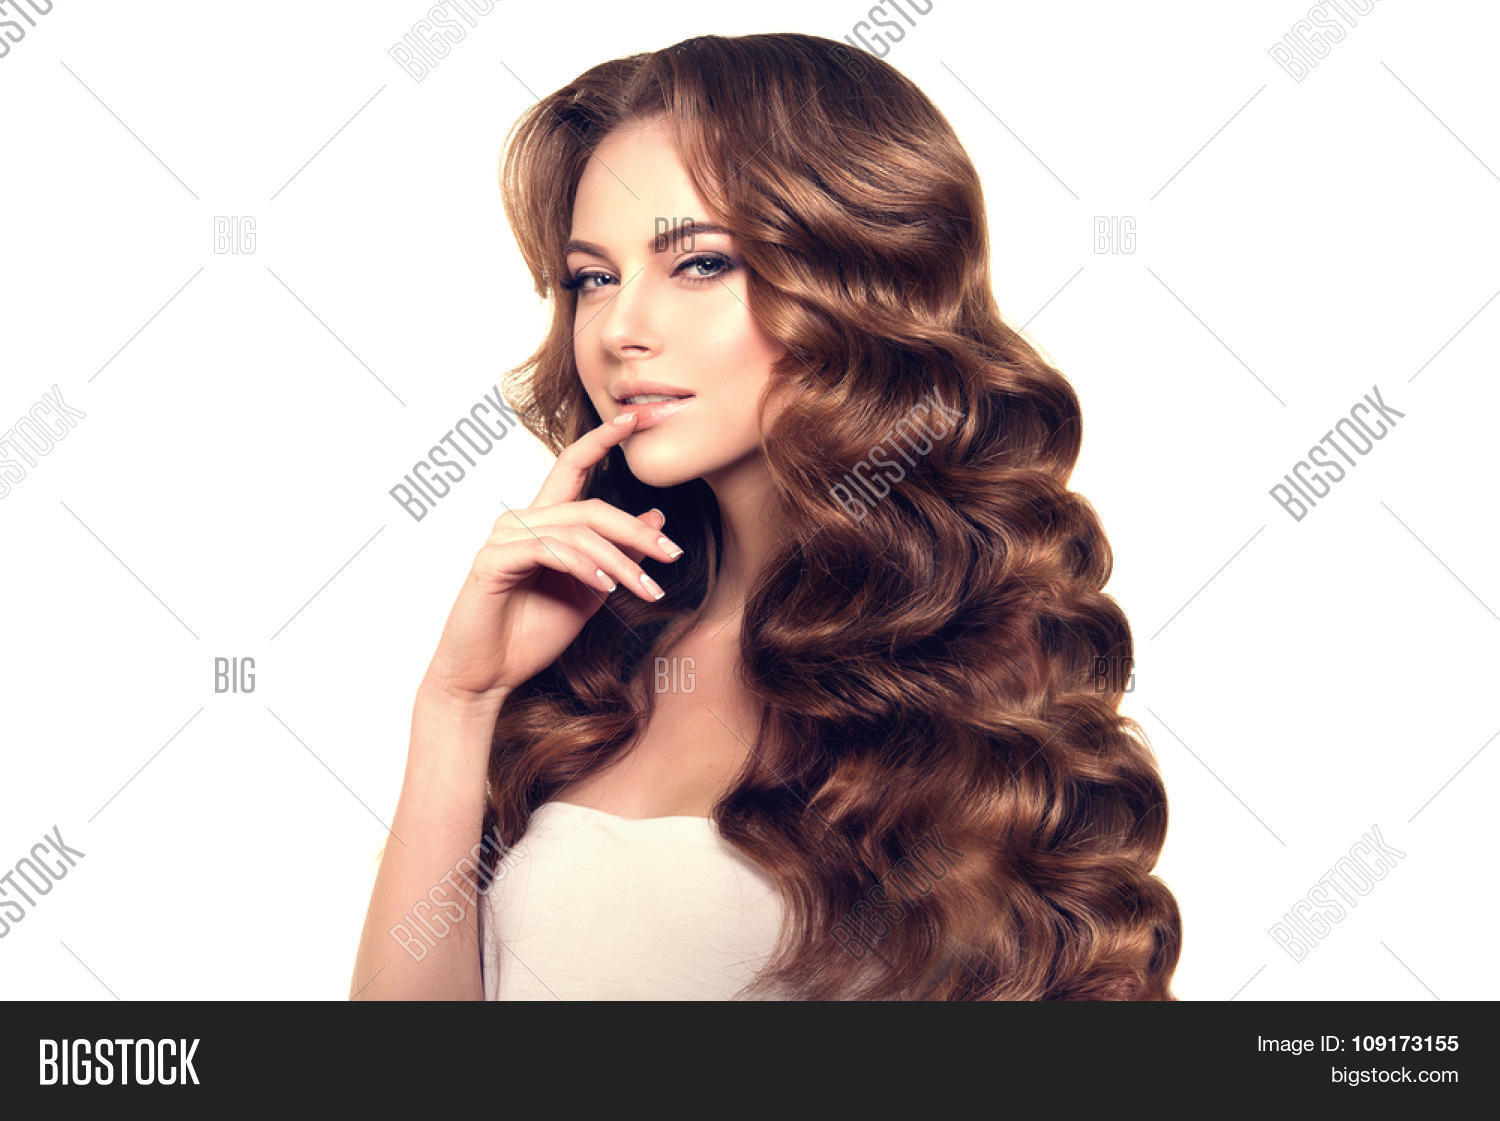 Healthy Hair Styles: Model Long Hair. Waves Image & Photo (Free Trial)